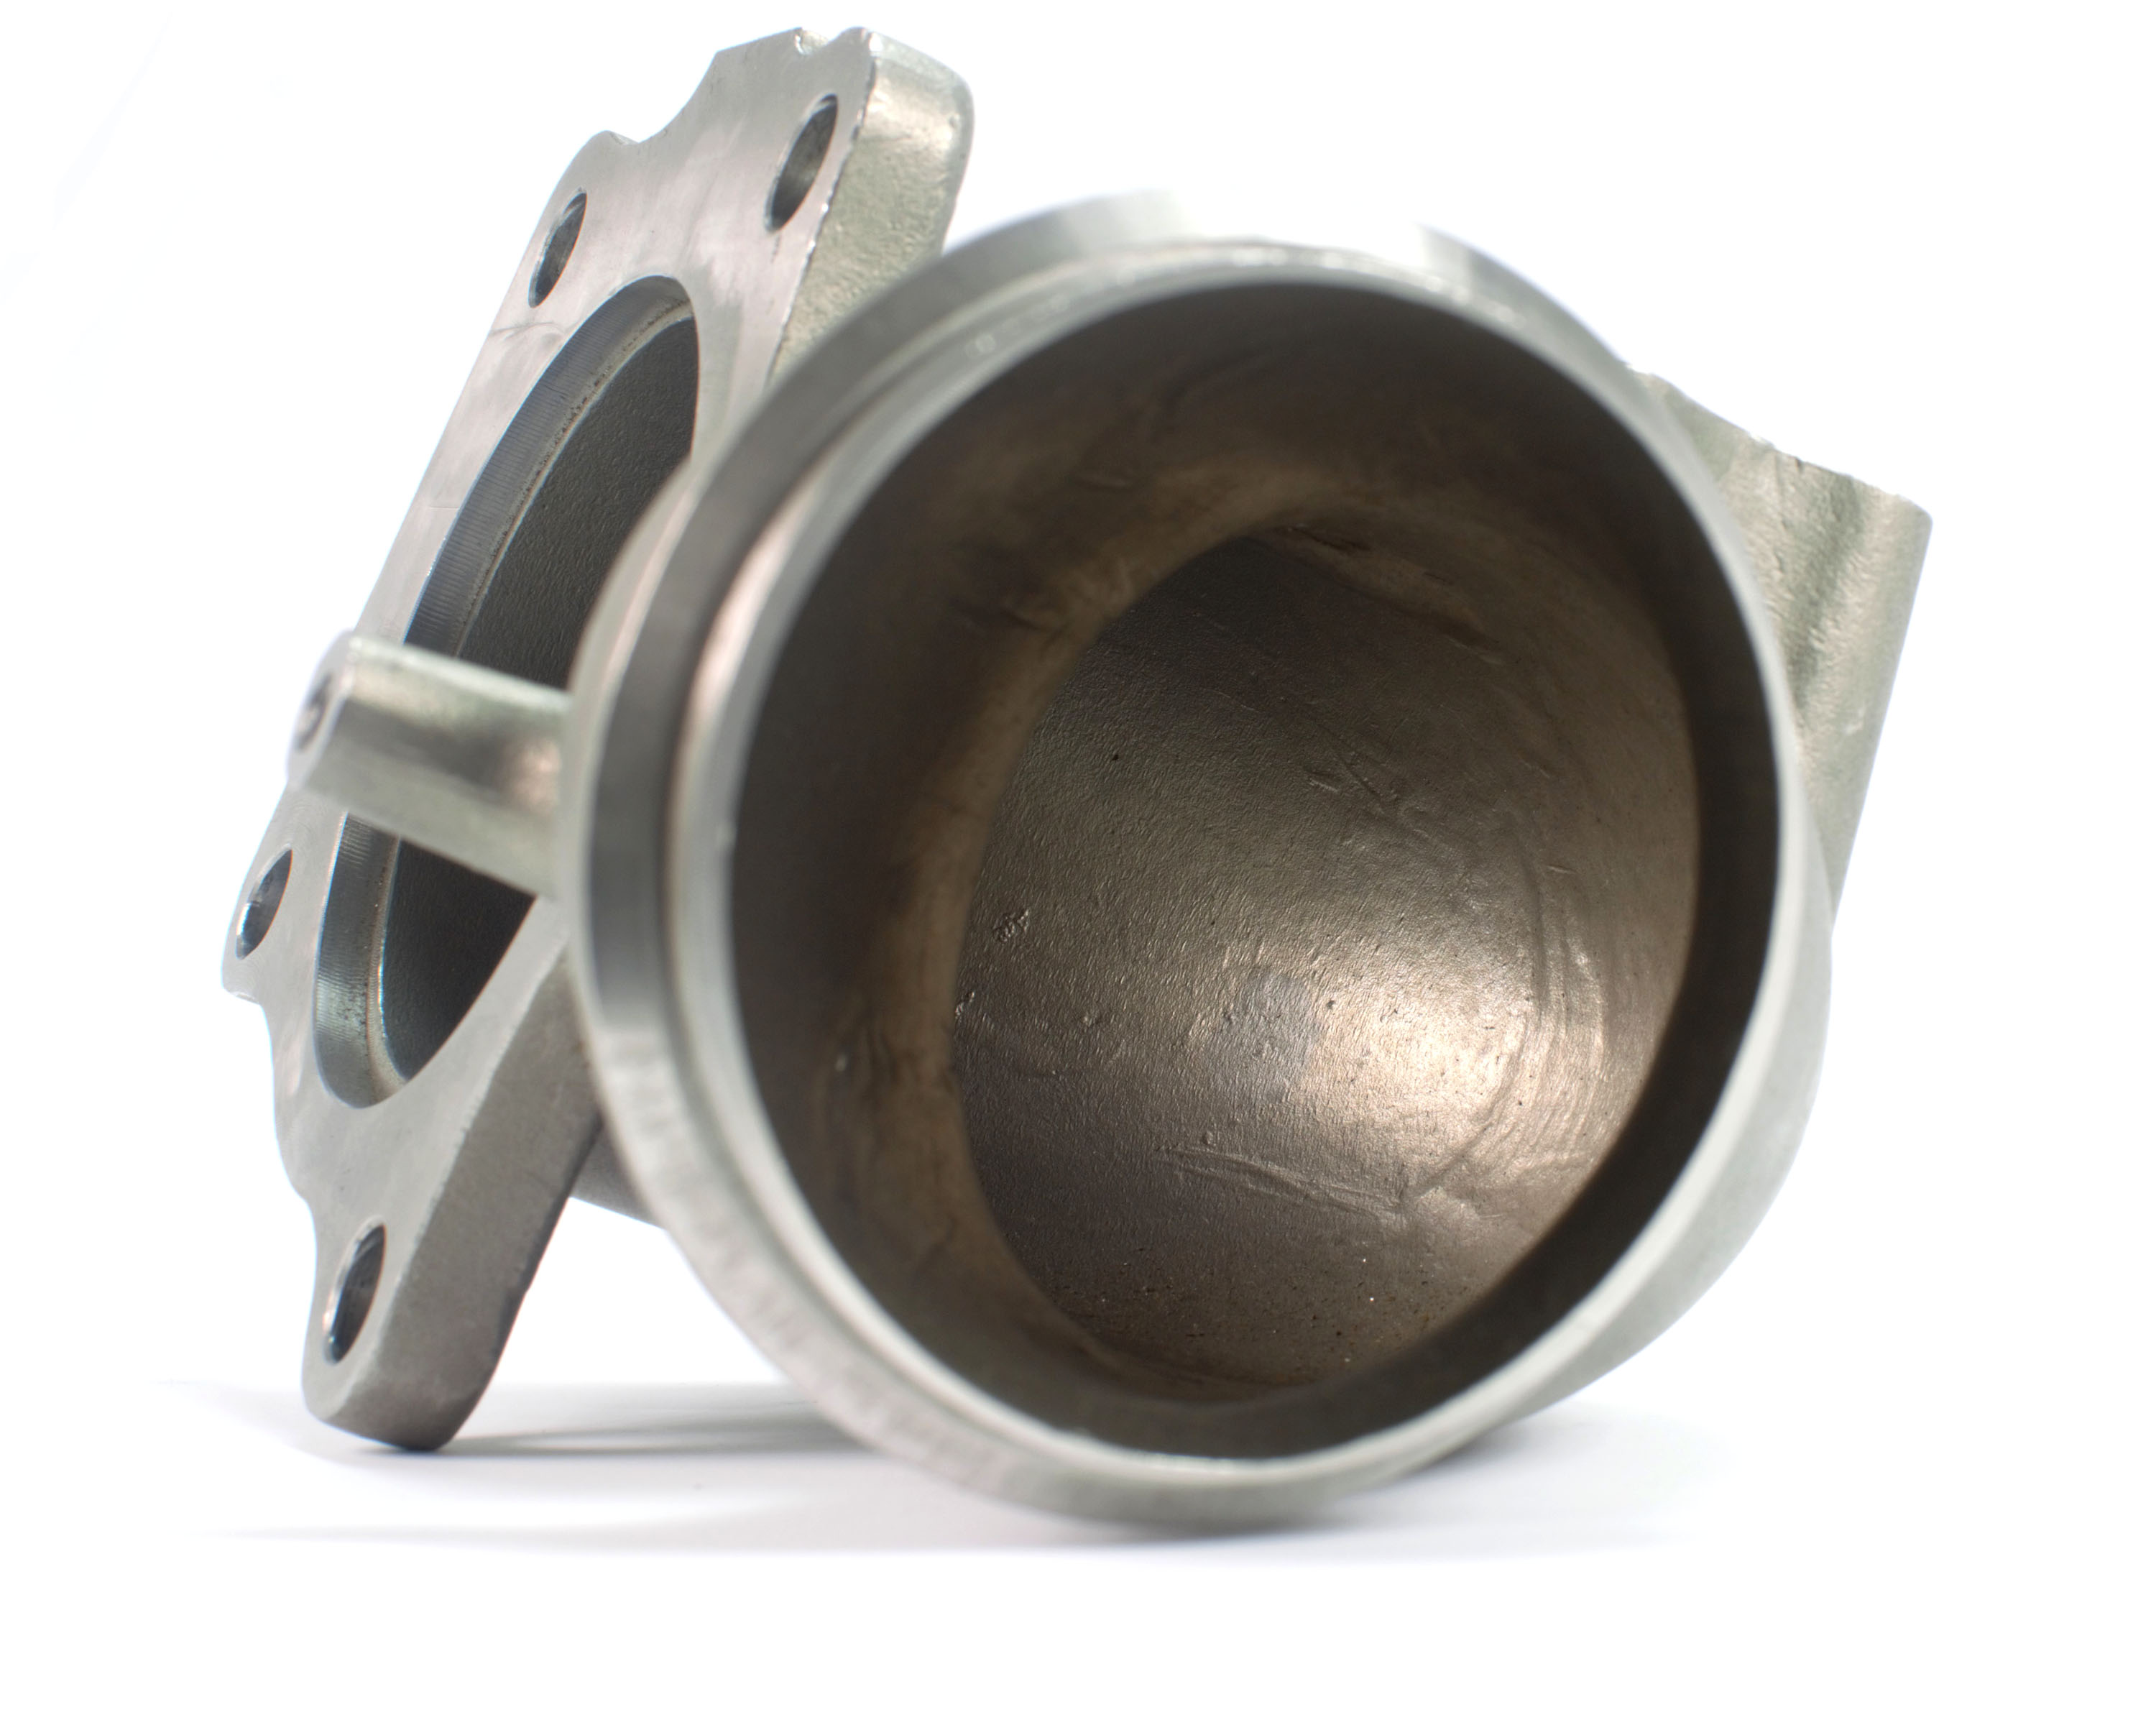 "Market leading 3.125"" bellmouth downpipe provides ample volume for hot exhaust gases to exit the turbo"